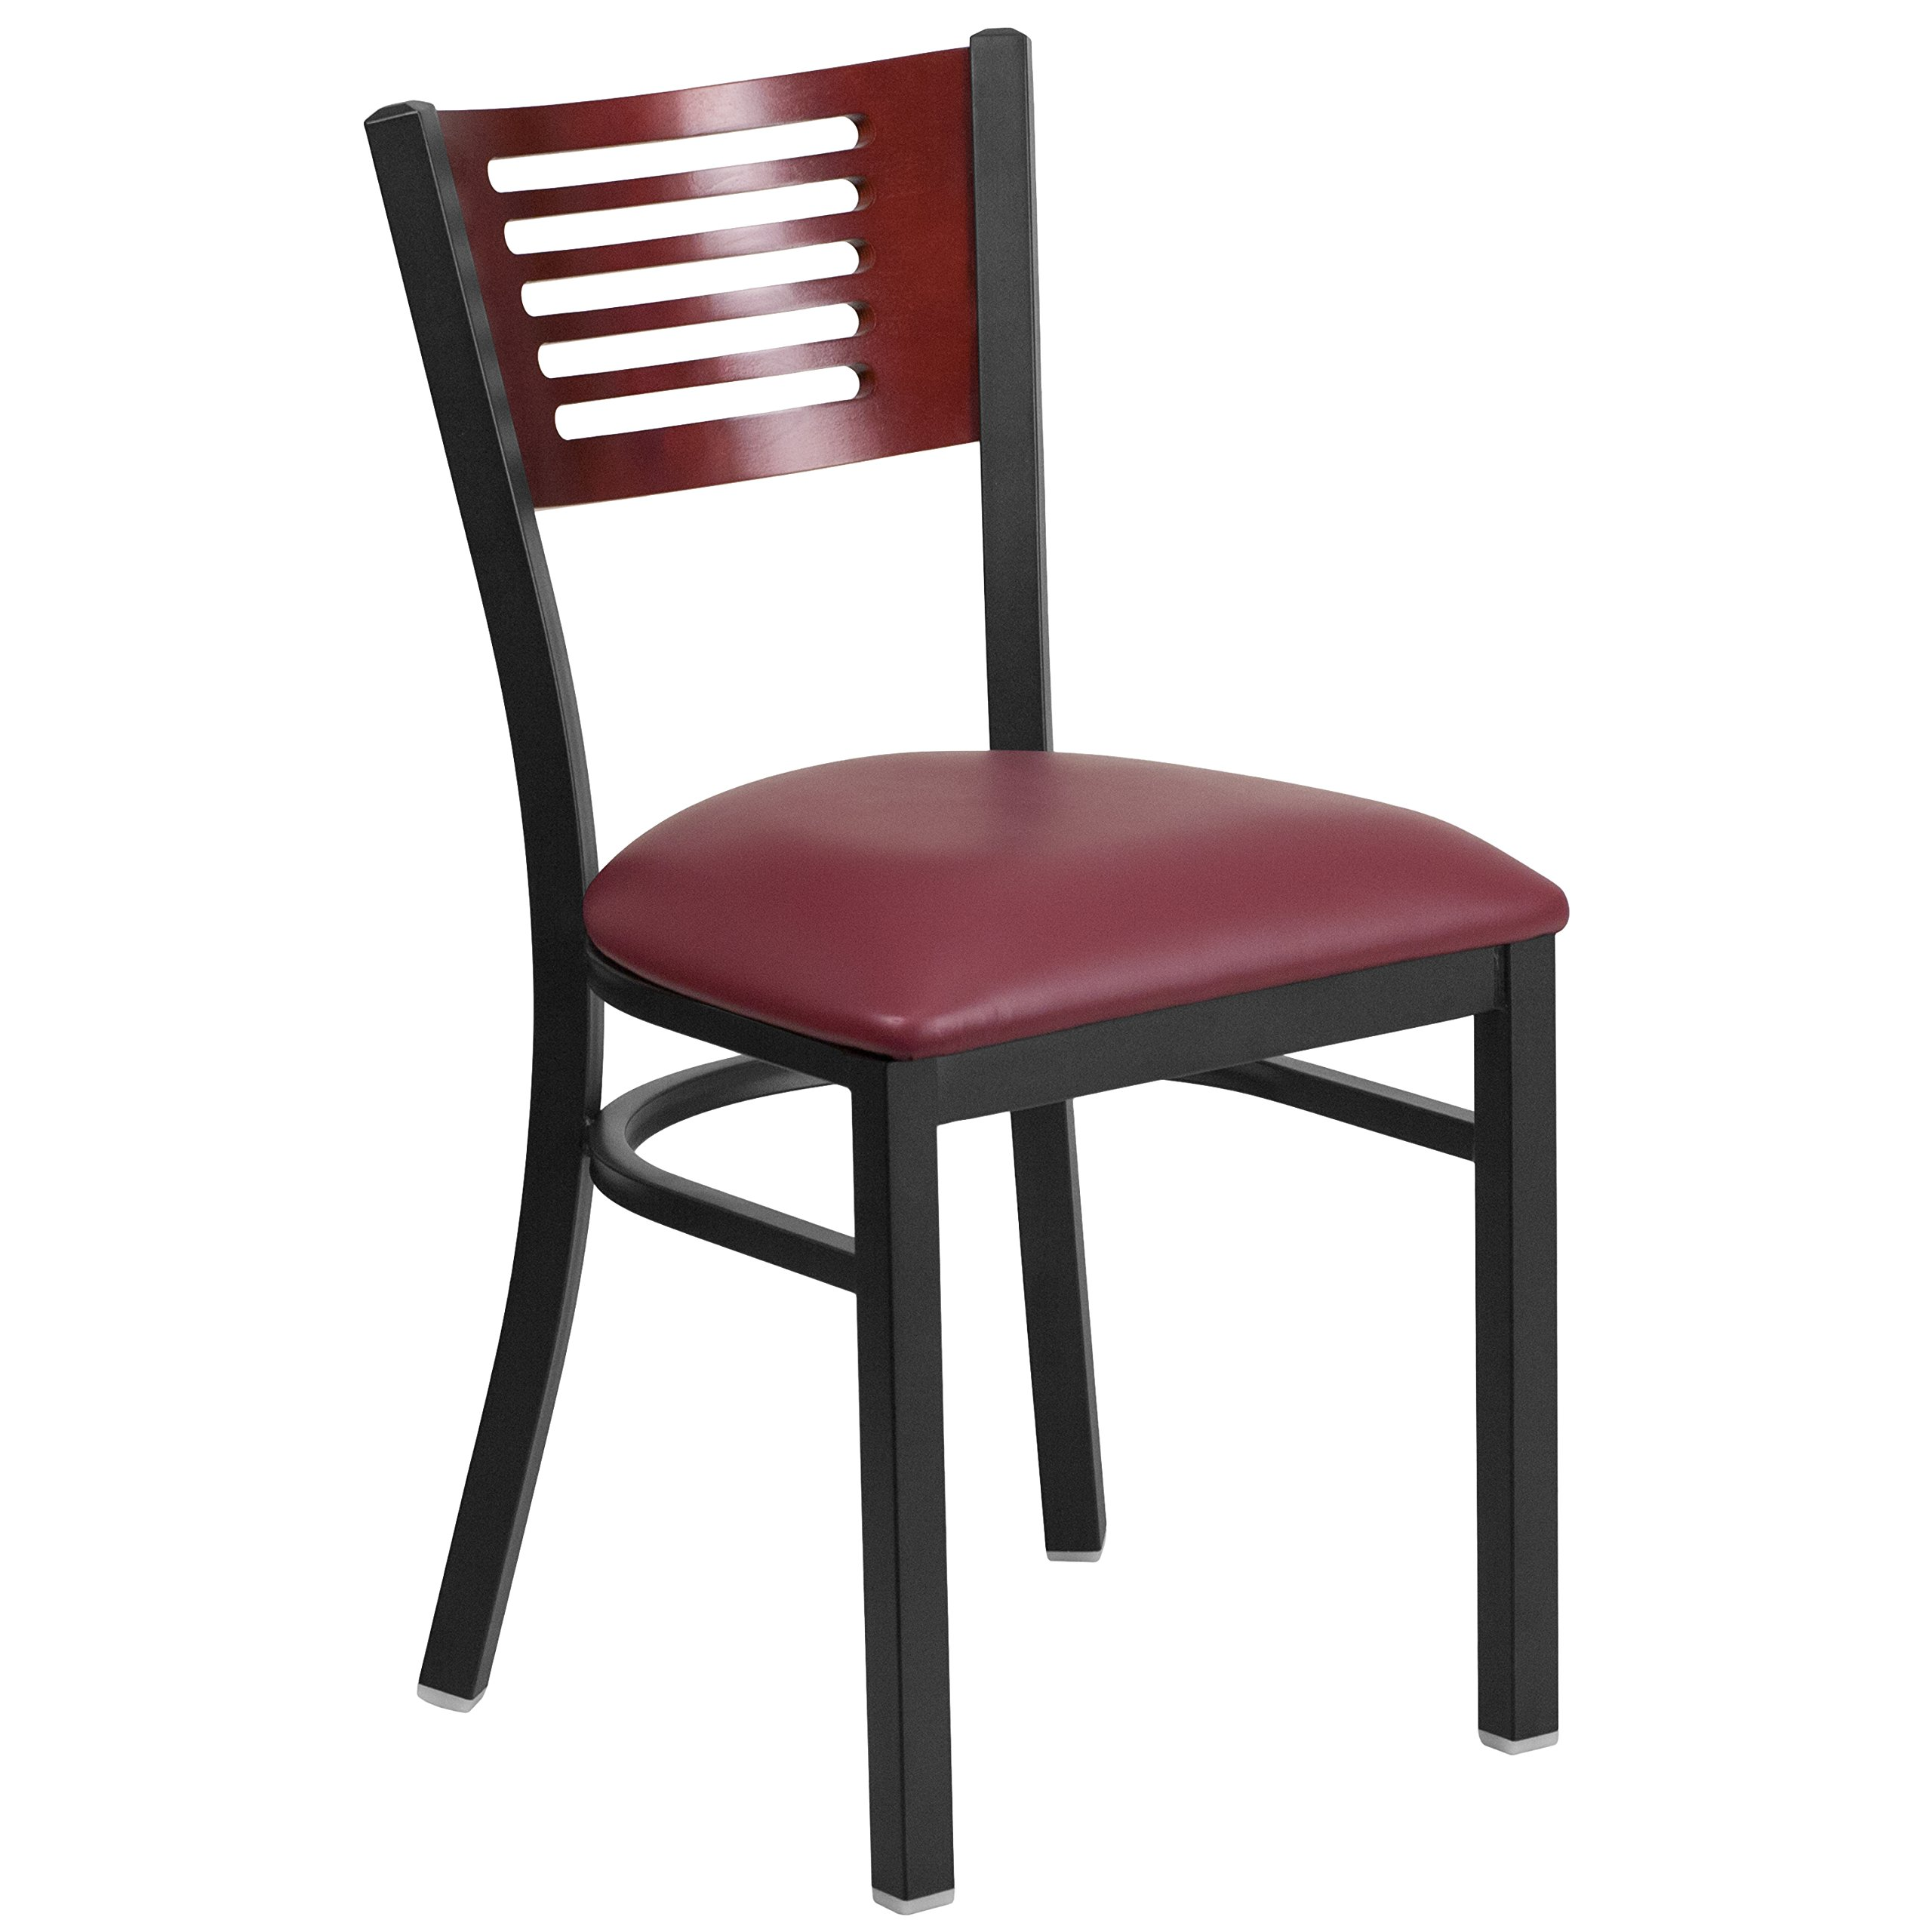 Flash Furniture HERCULES Series Black Slat Back Metal Restaurant Chair - Mahogany Wood Back, Burgundy Vinyl Seat